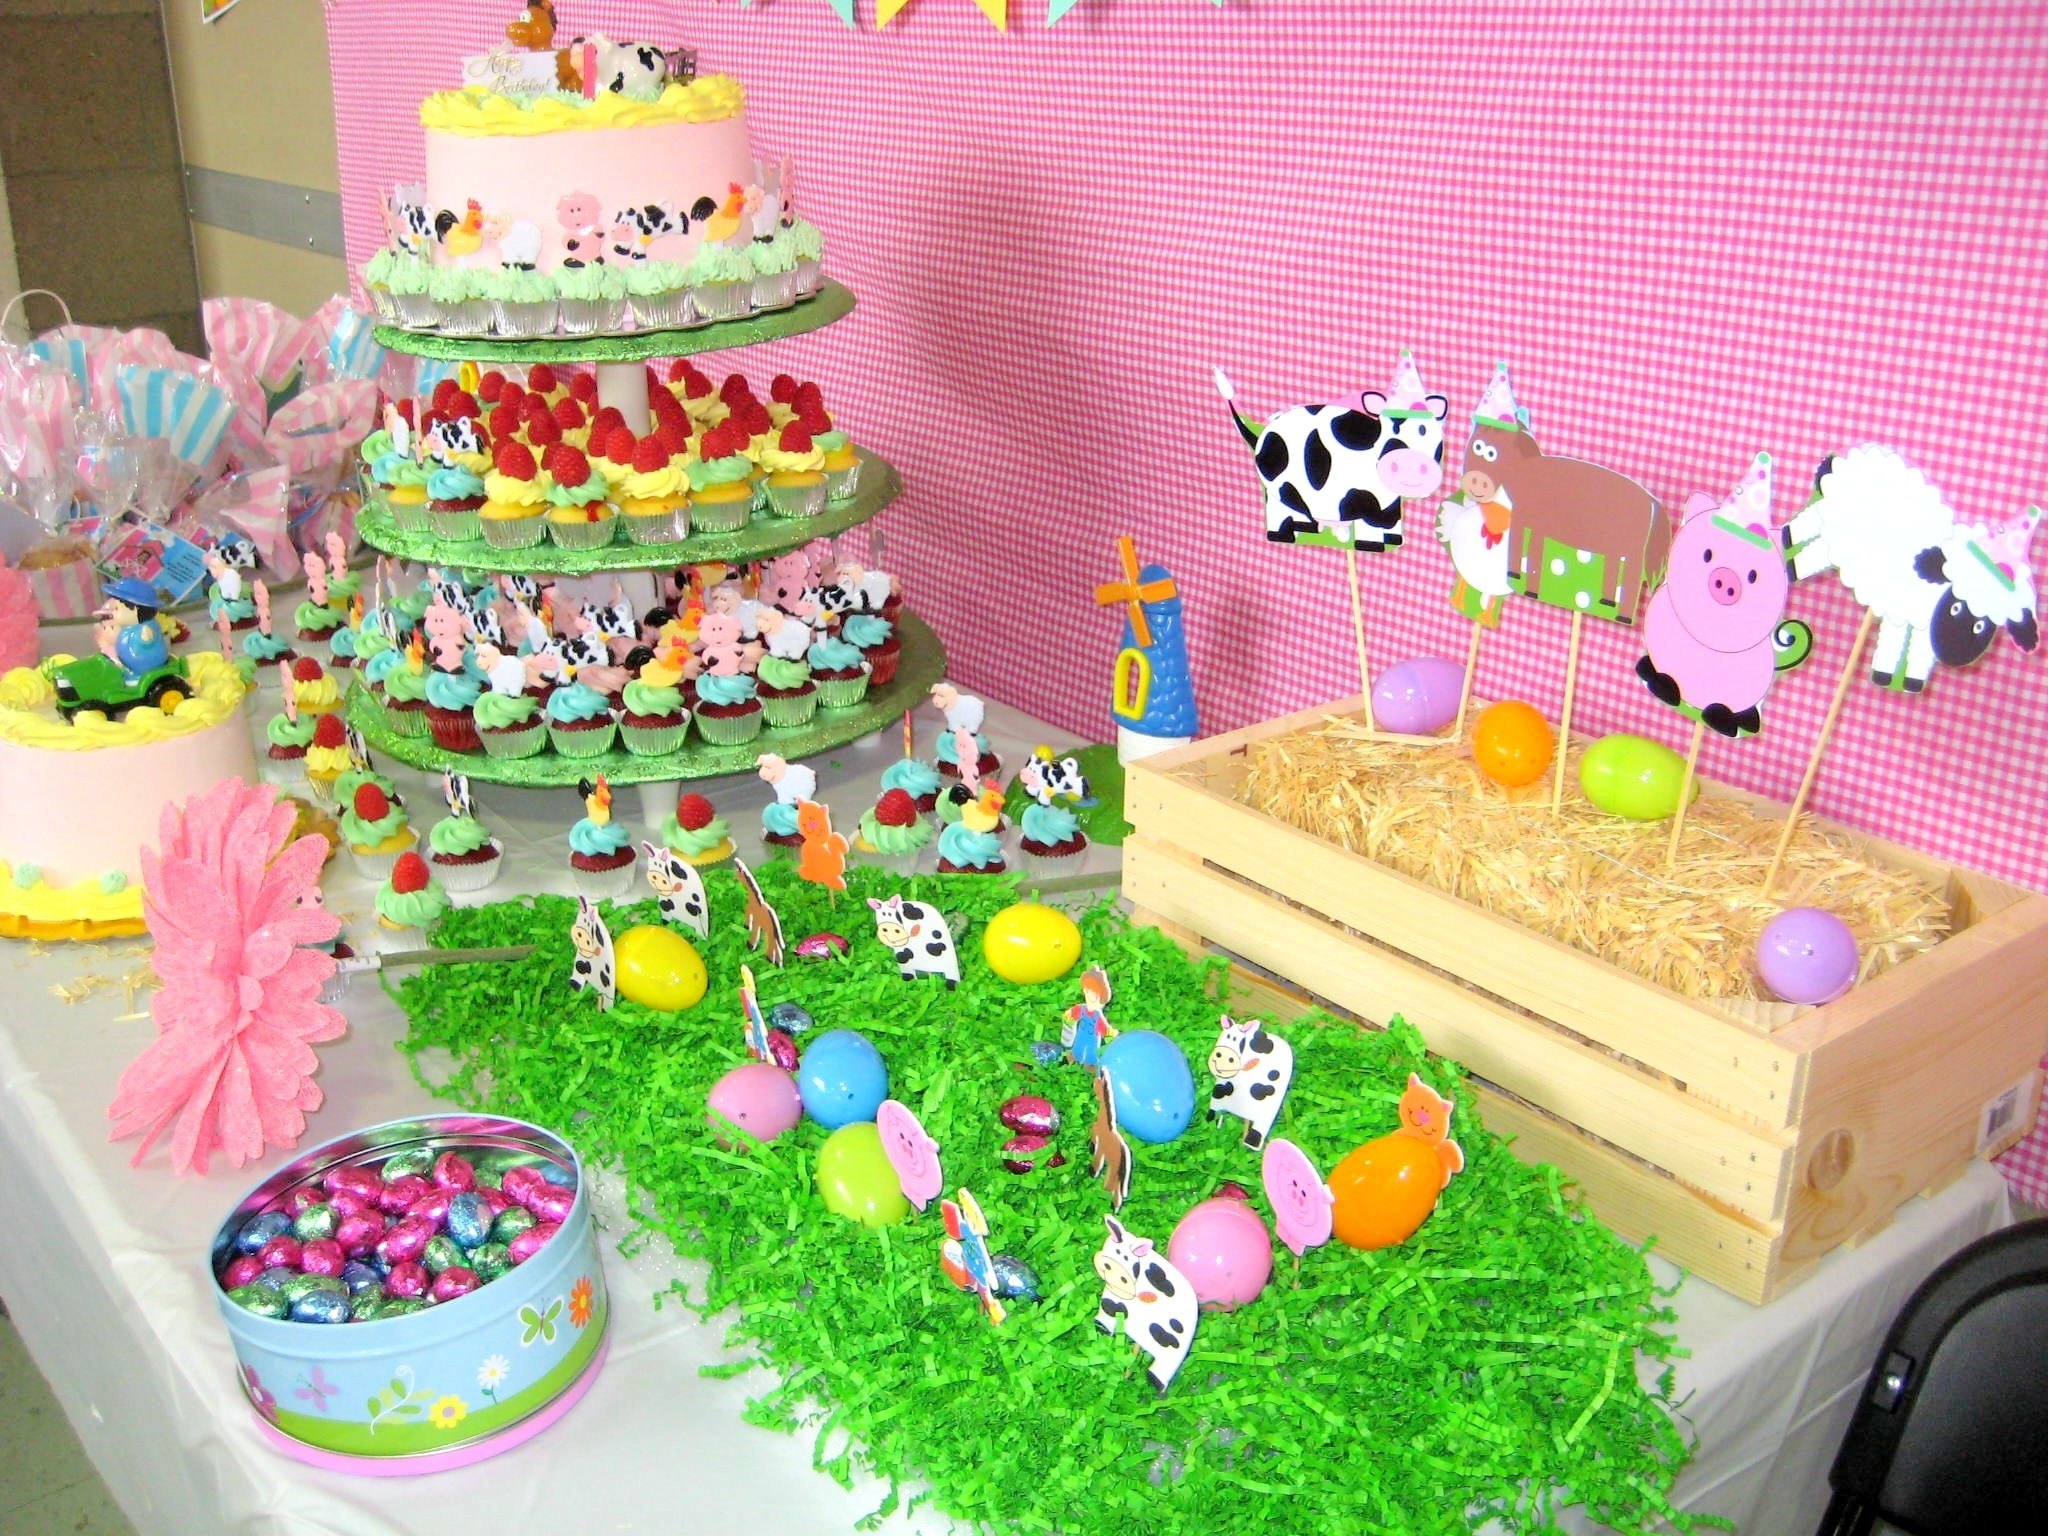 10 Pretty Birthday Ideas For 10 Year Olds birthday party game ideas for 10 year olds wedding 3 2021